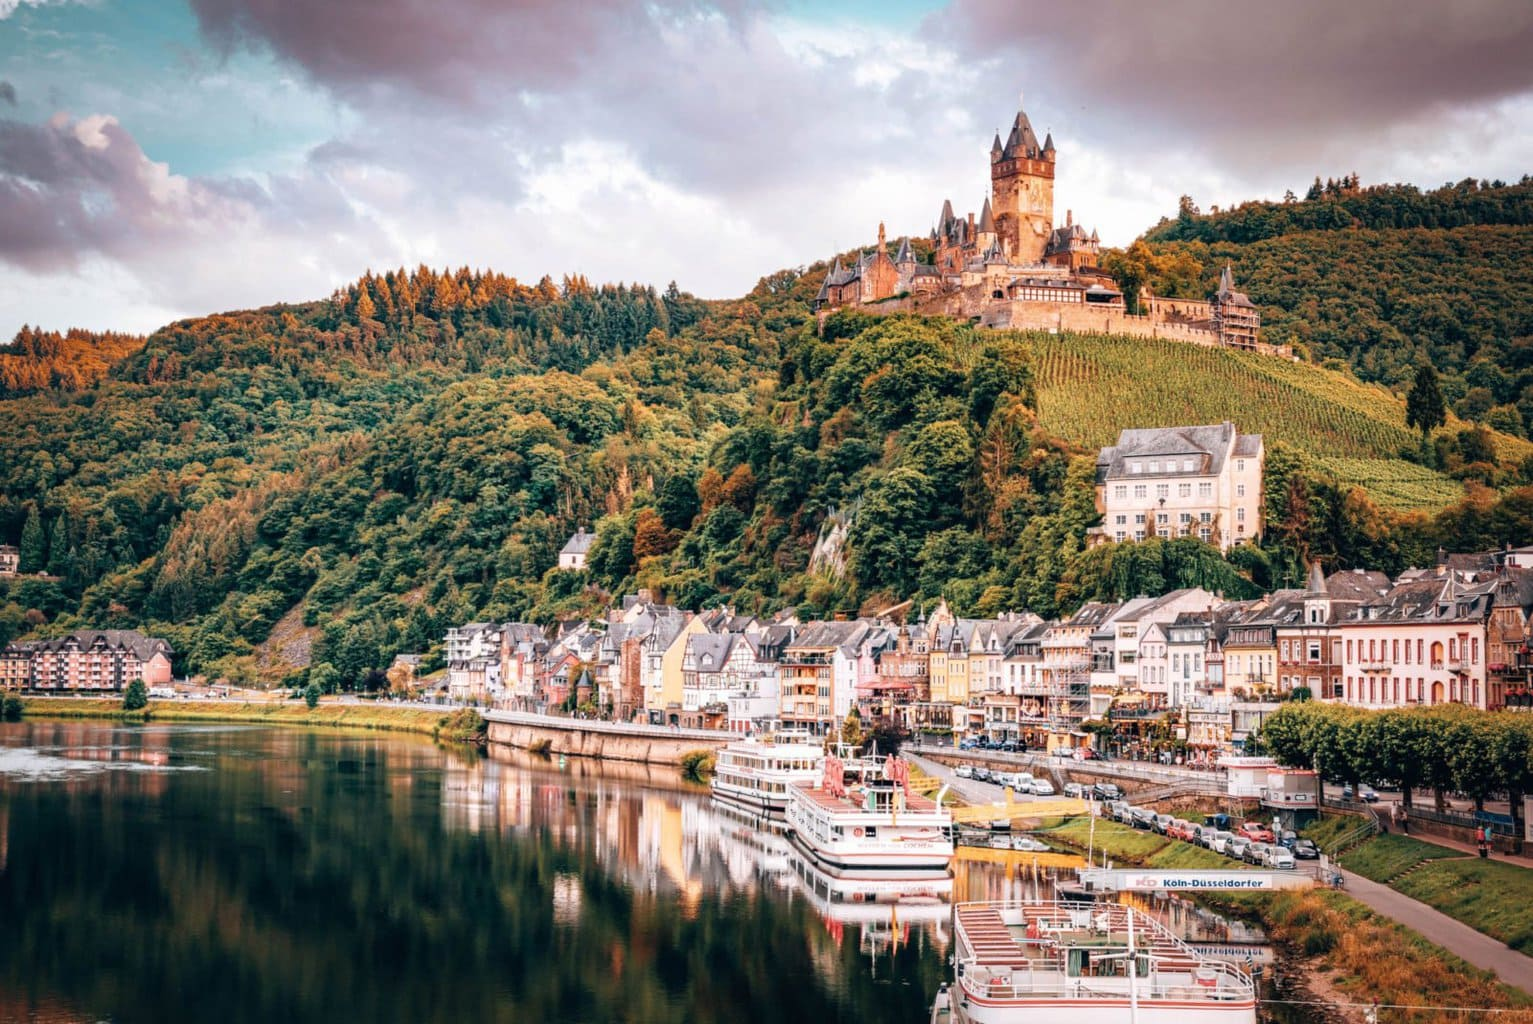 Cochem castle, Germany stunning town in the Mosel Valley